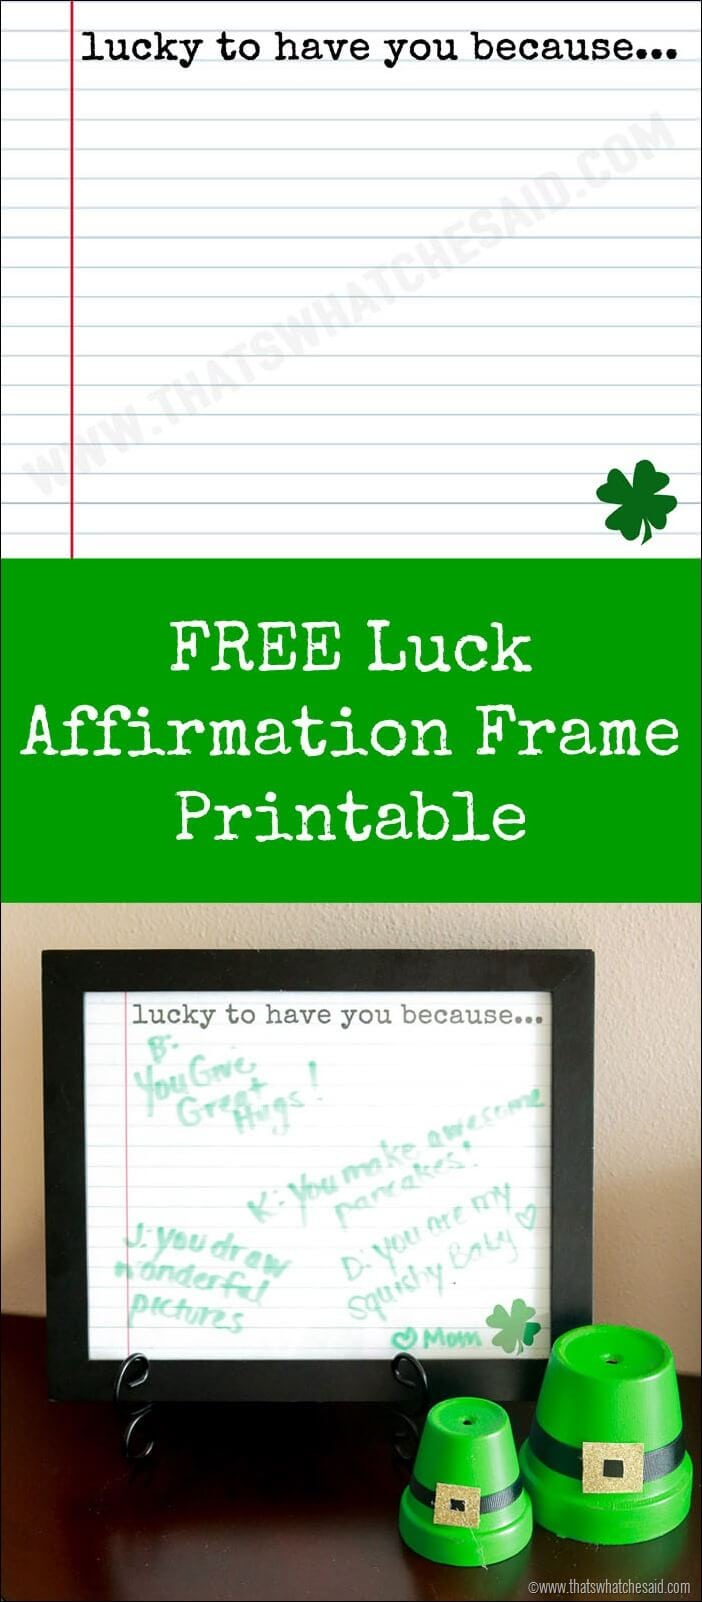 Free Luck Affirmation Printable